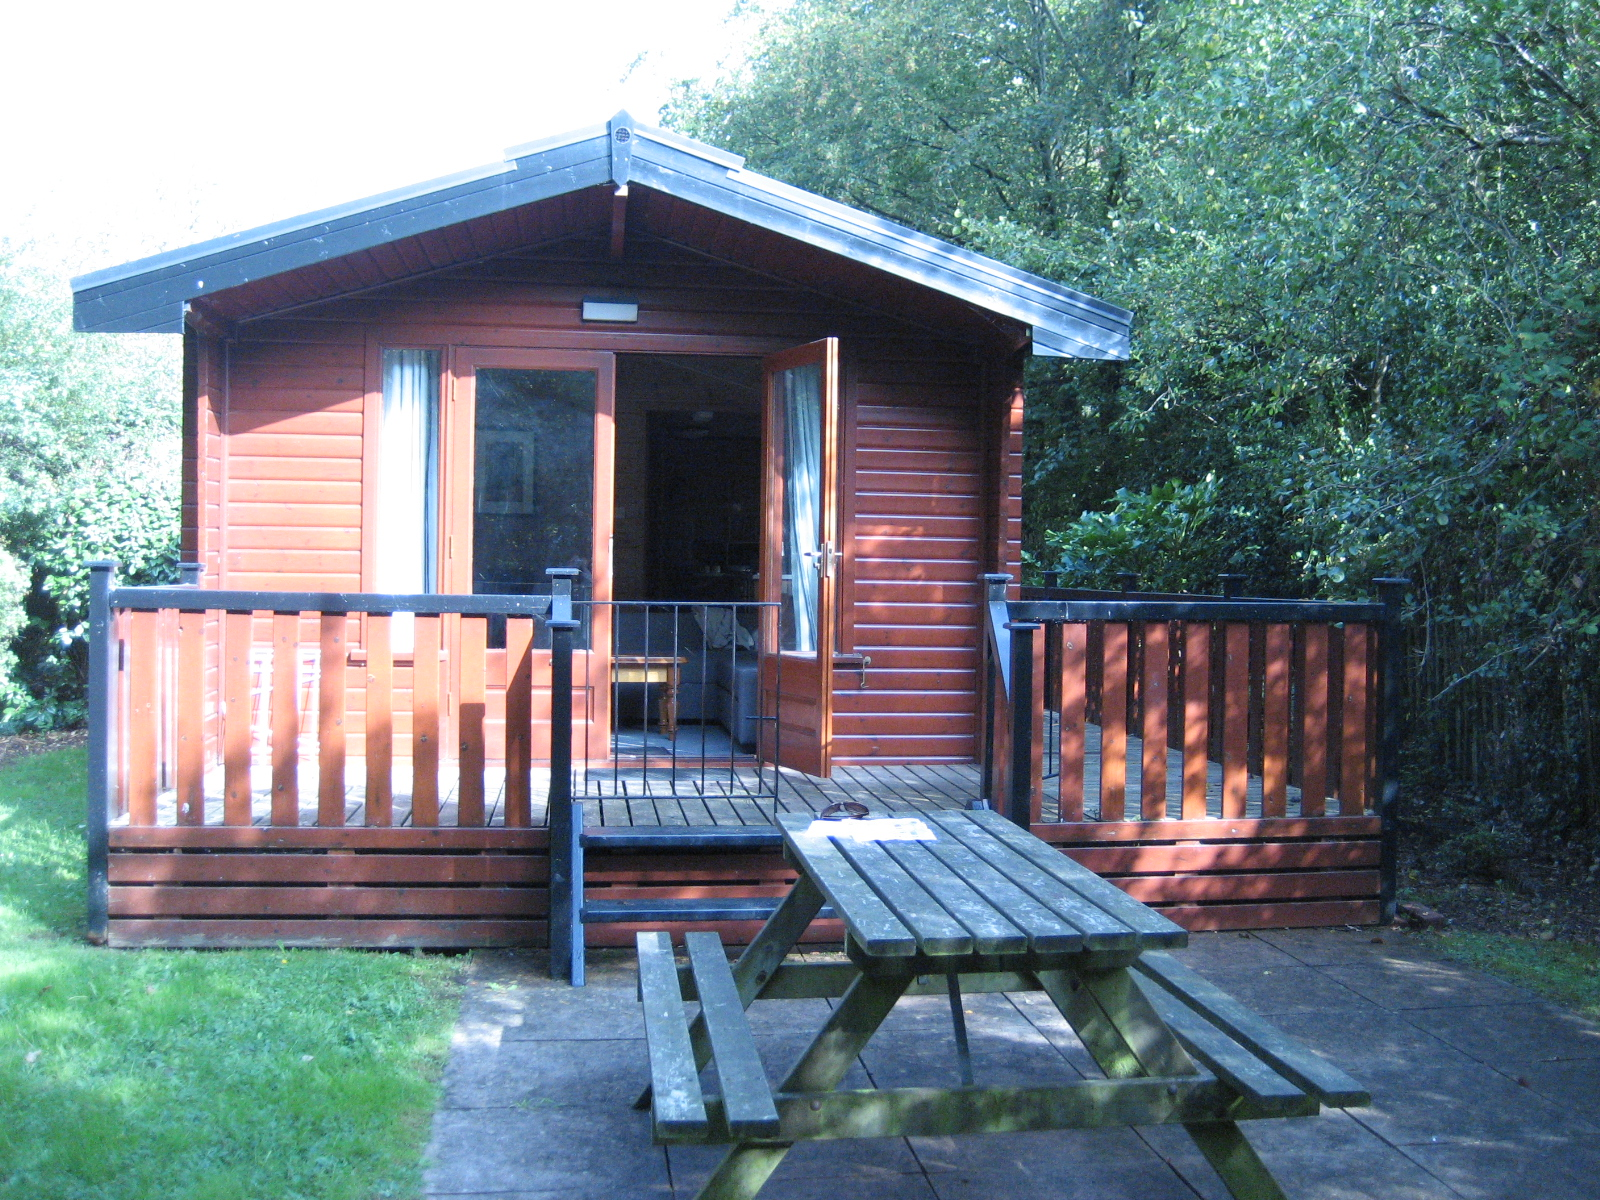 Sandy balls new forest camping tripreporter for Camp sites with cabins